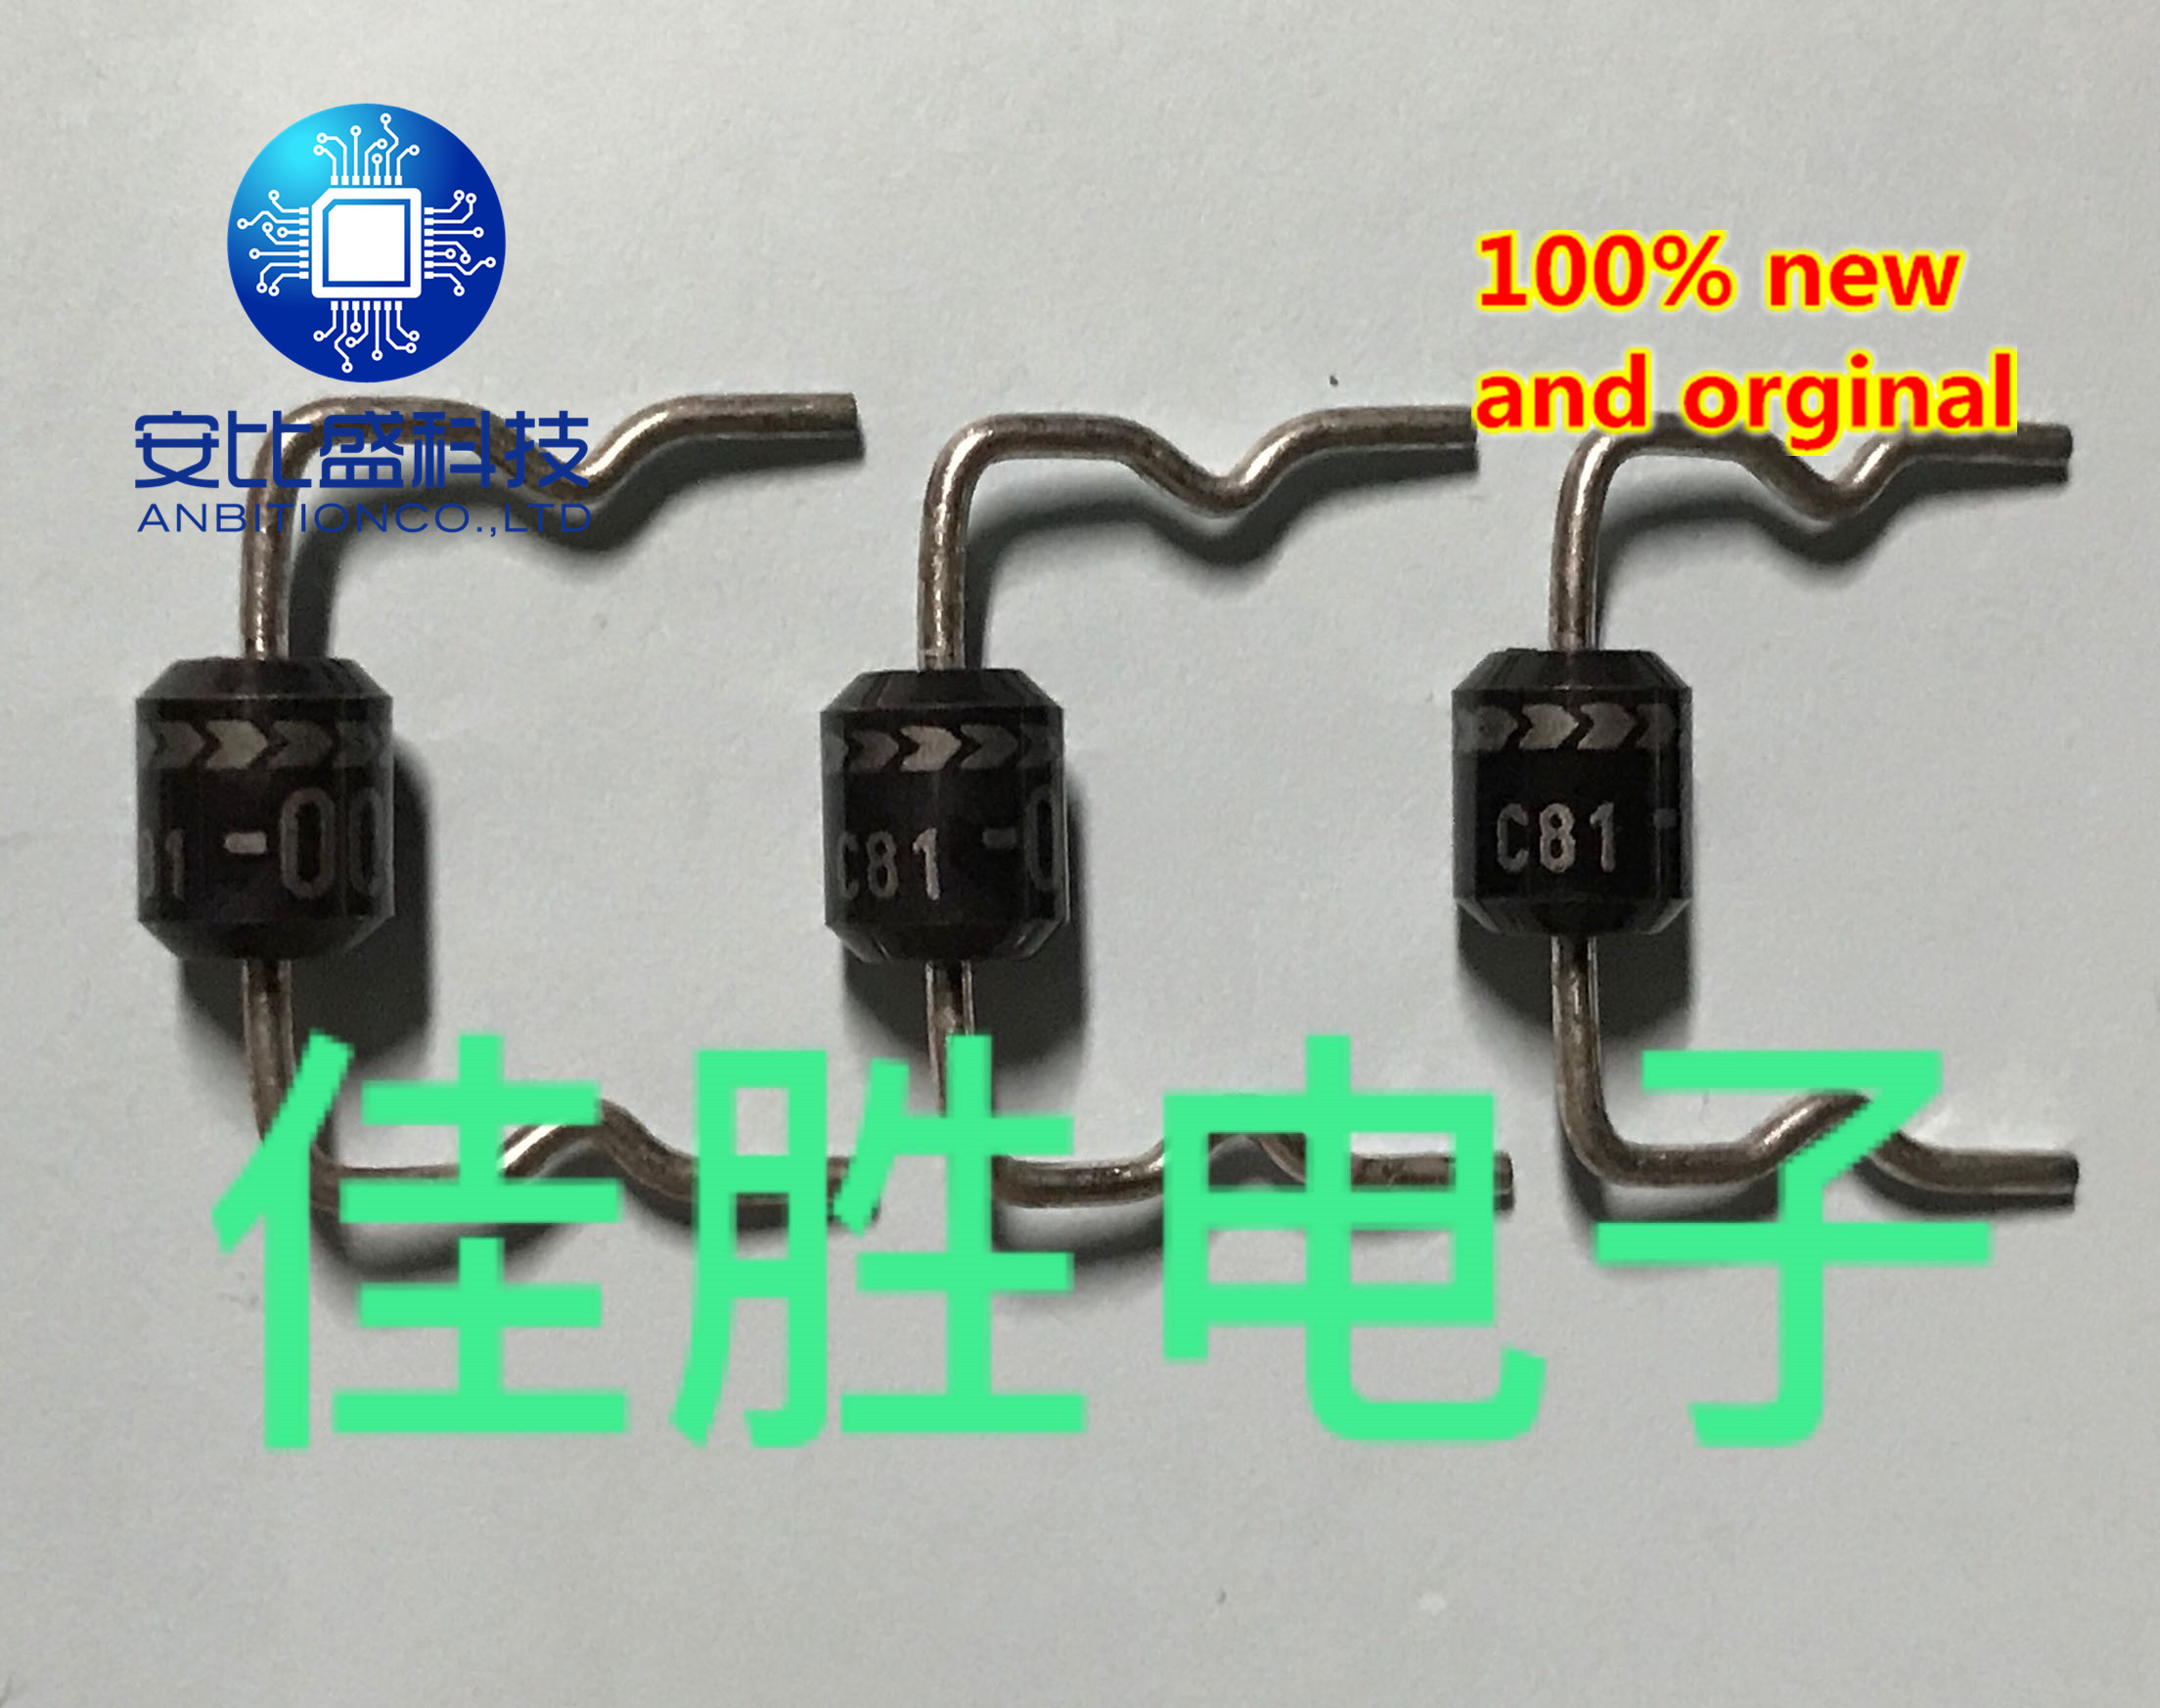 30pcs 100% New And Orginal ERC81-004L 2.6A40V Ultra Low Dropout Schottky Diode Silkscreen C81-004  In Stock